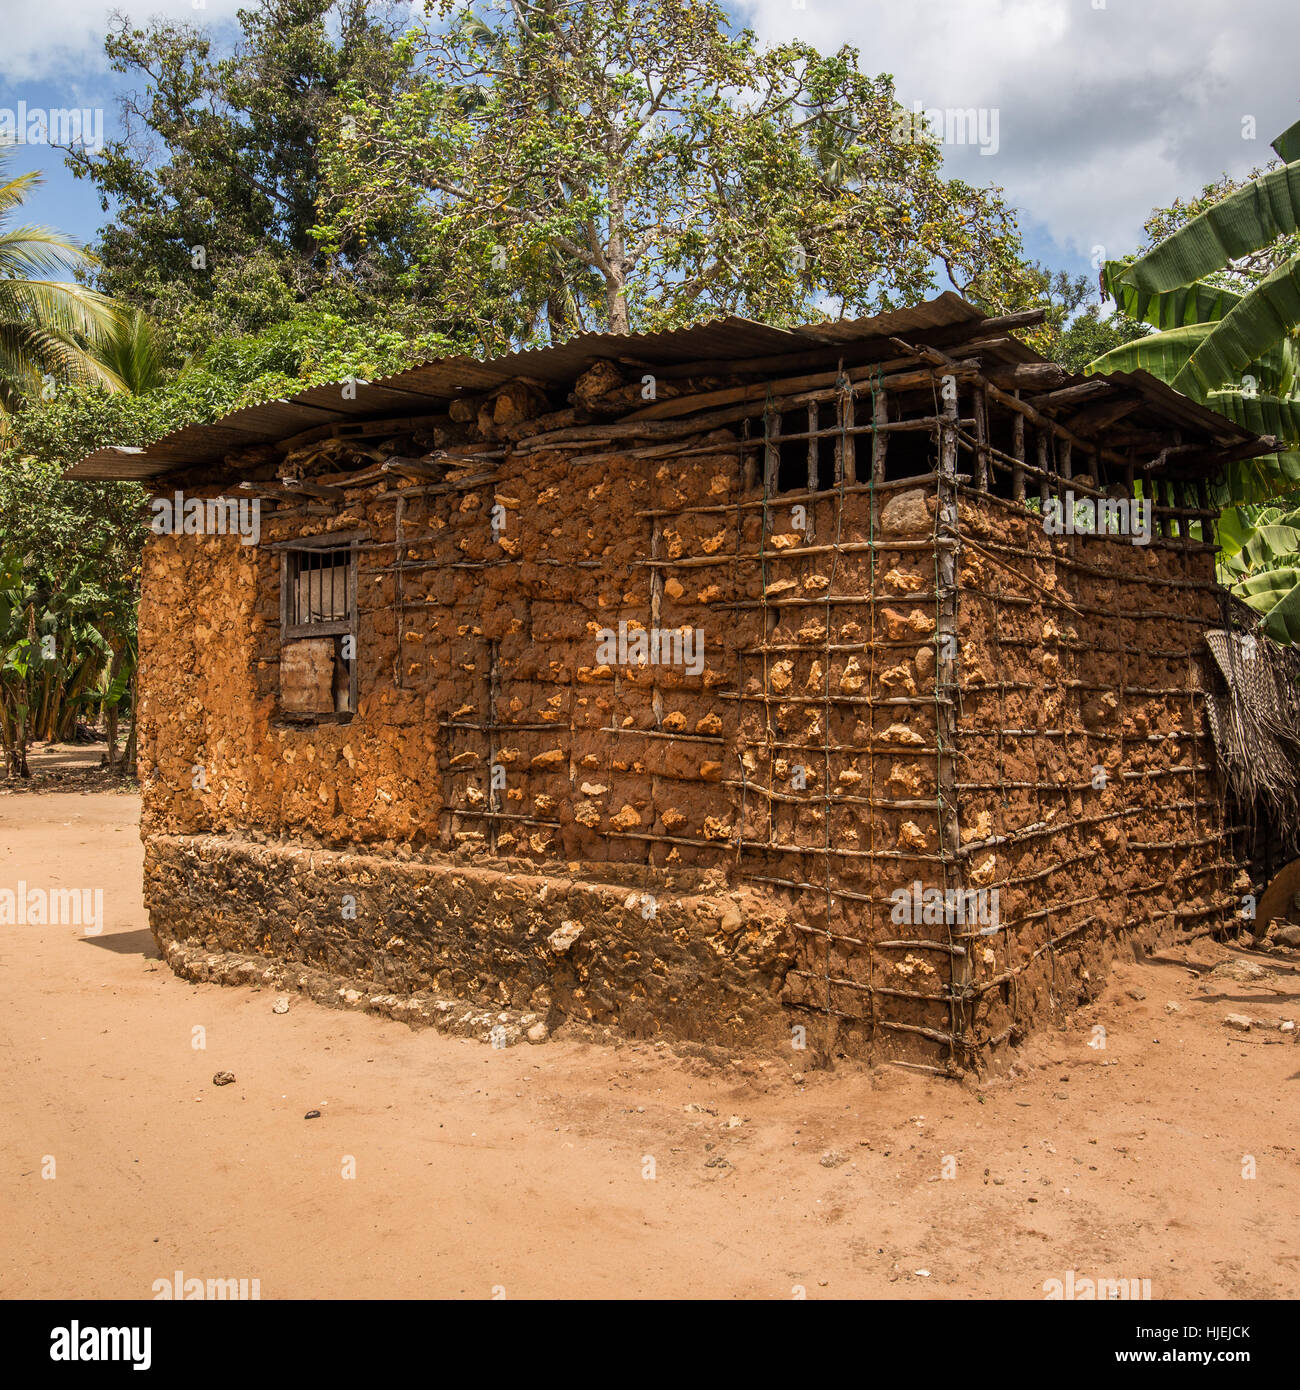 Small primitive house with steel sheet roof,built by native local people, made out of wooden sticks and red soil - Stock Image